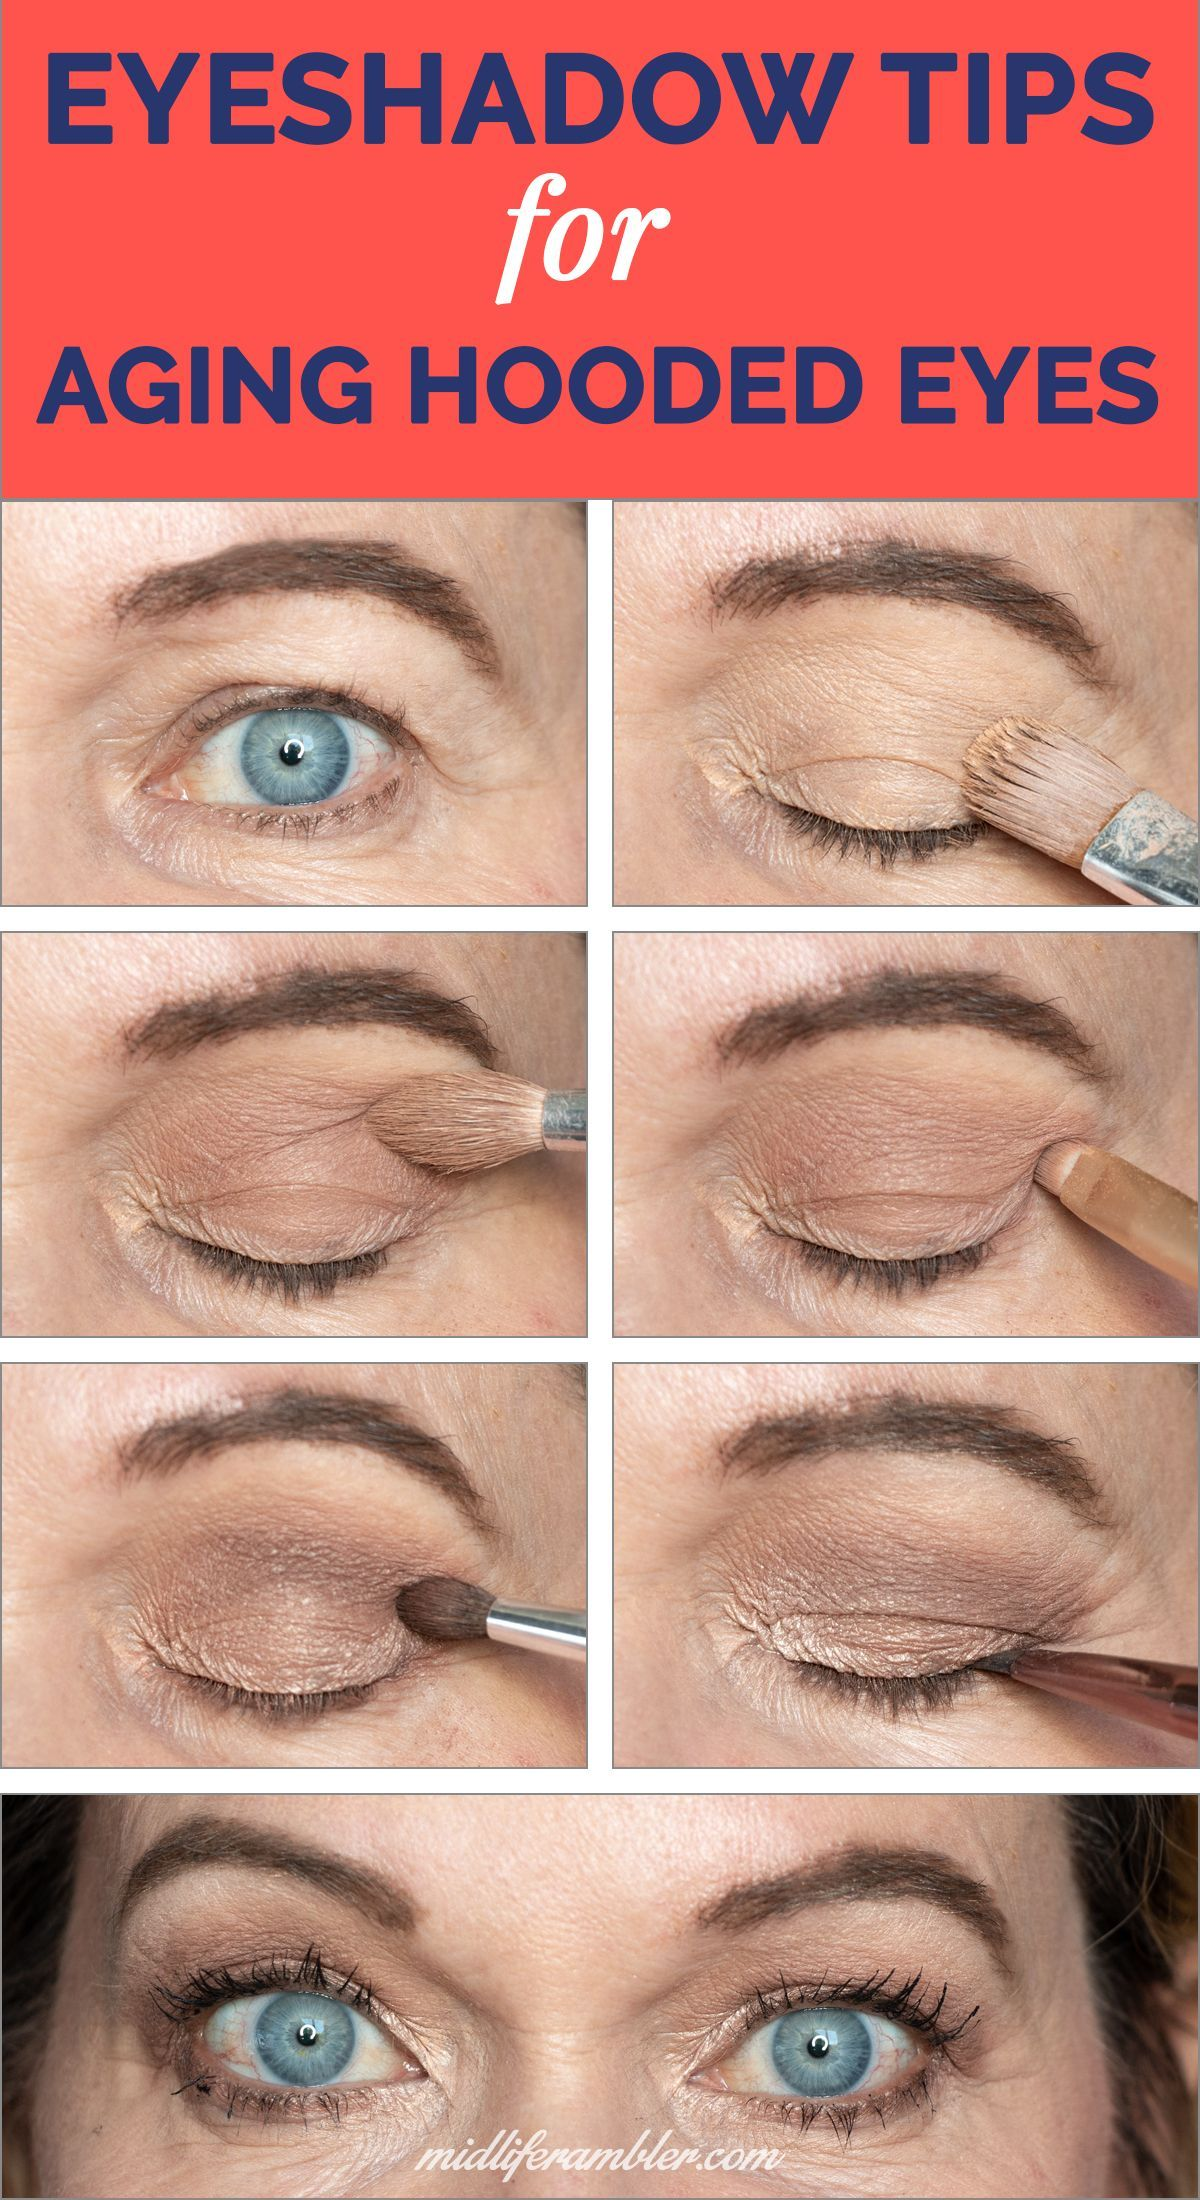 Struggling with eye makeup for your aging, hooded, droopy eyes